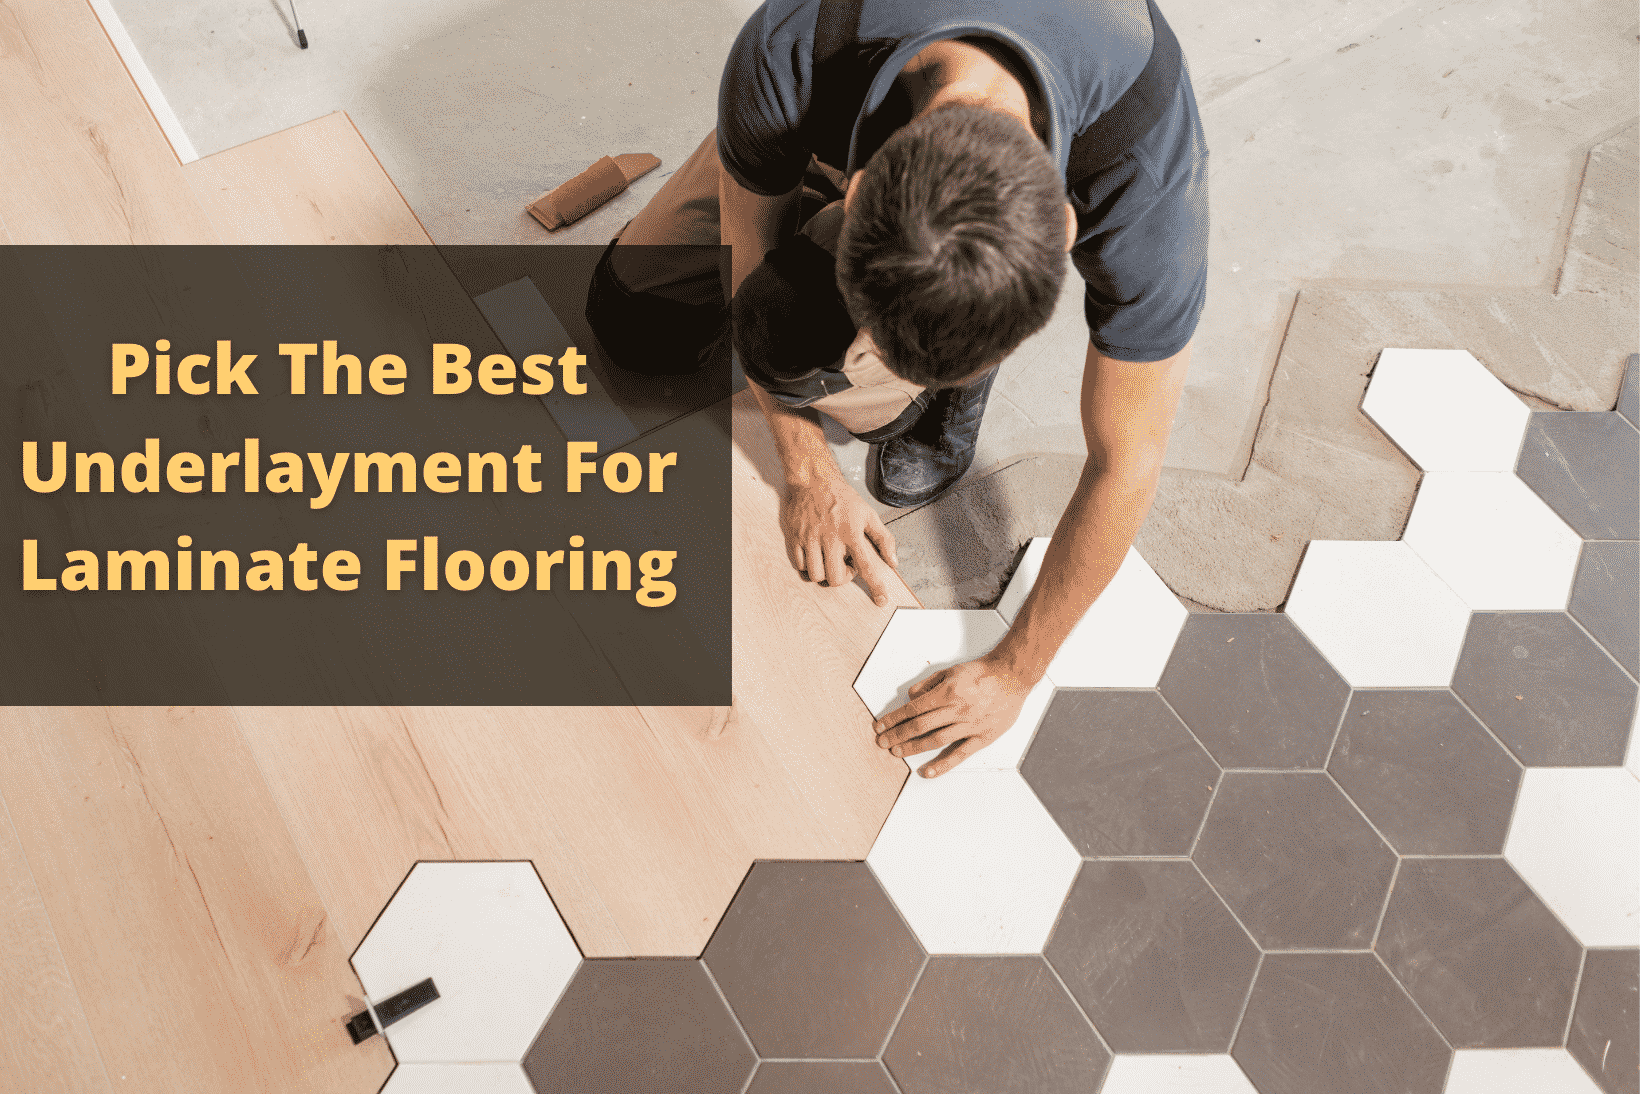 Underlayment For Laminate Flooring, What Is The Best Underlayment For Laminate Flooring